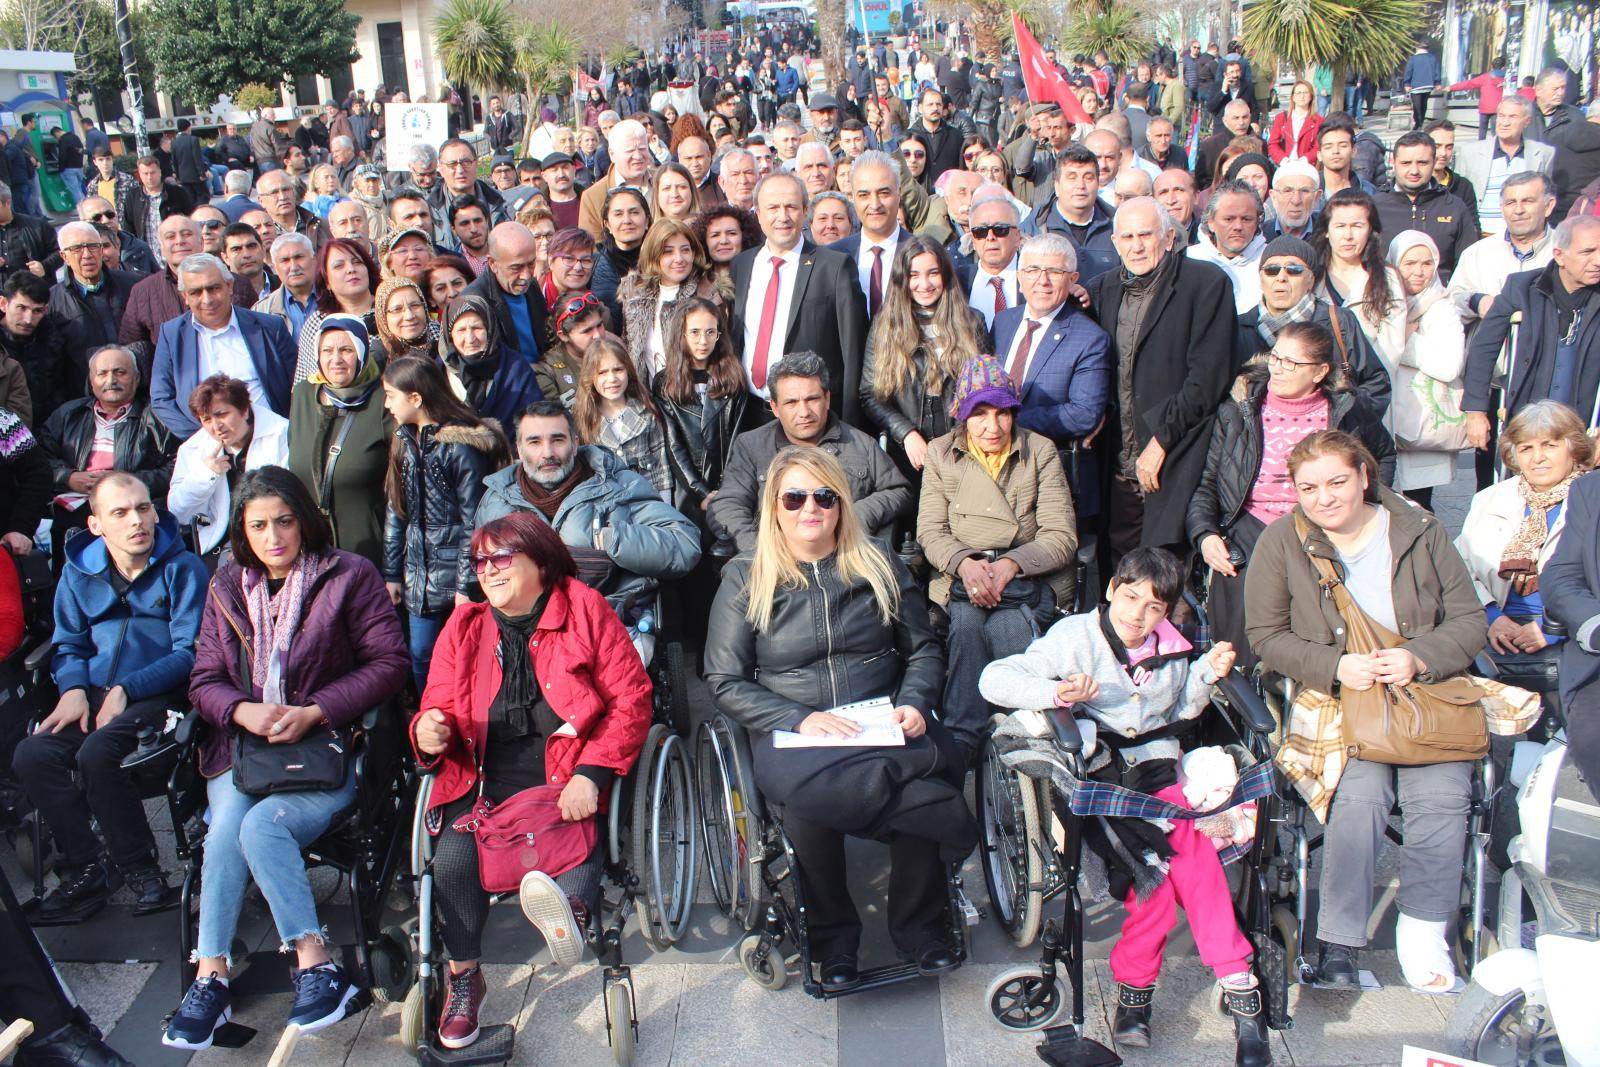 Group of persons with disabilities posing for a camera shot